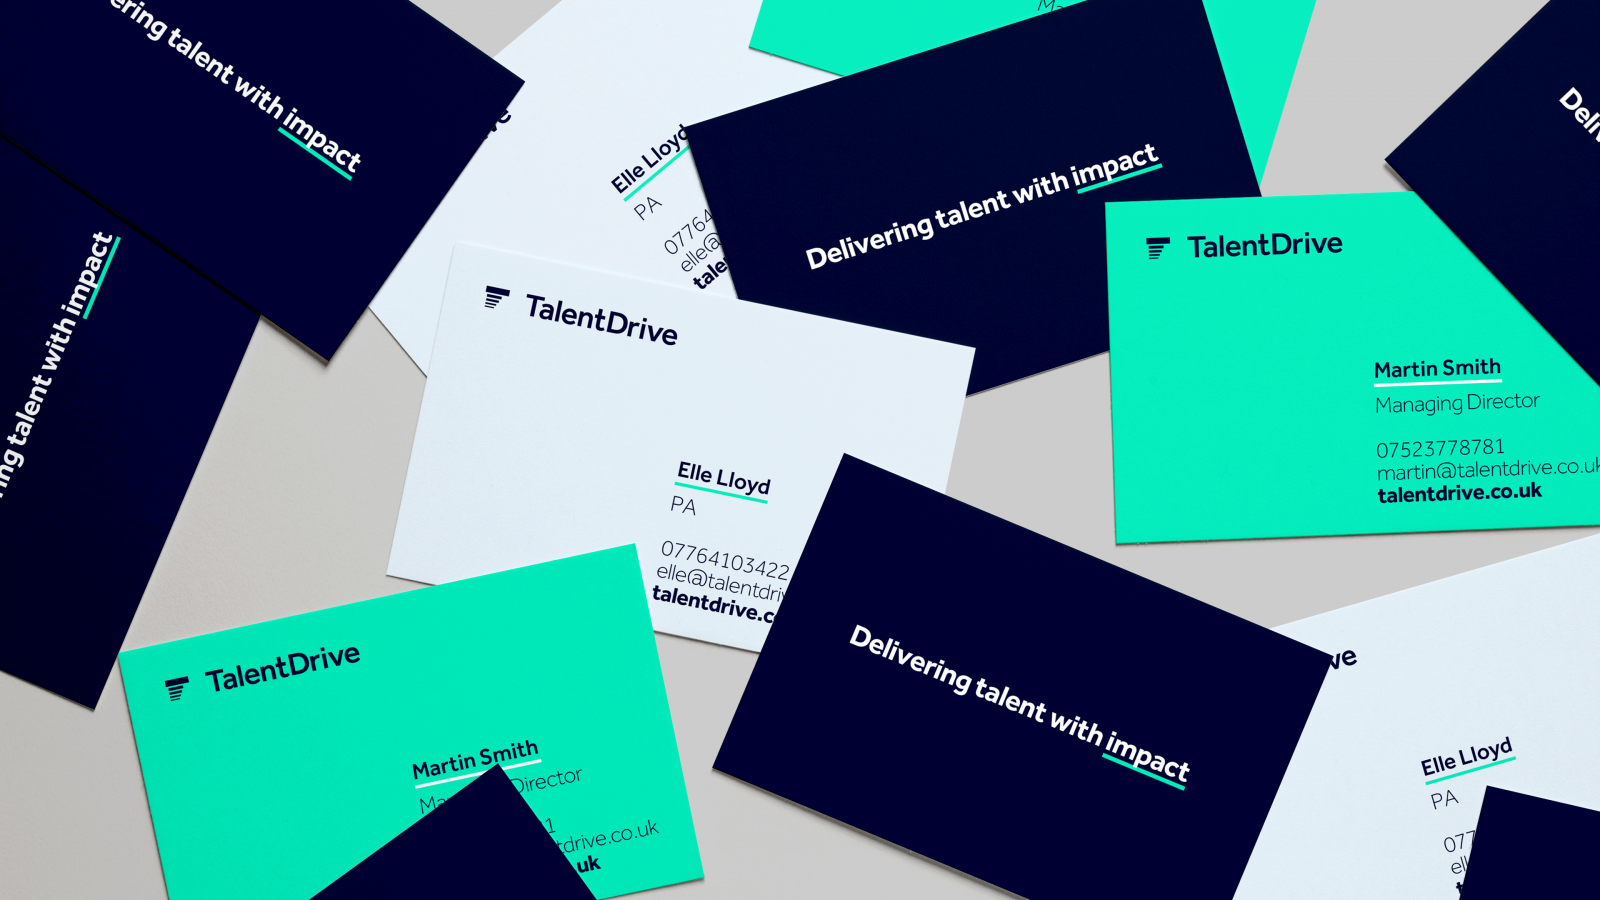 Talent Drive branding on business cards